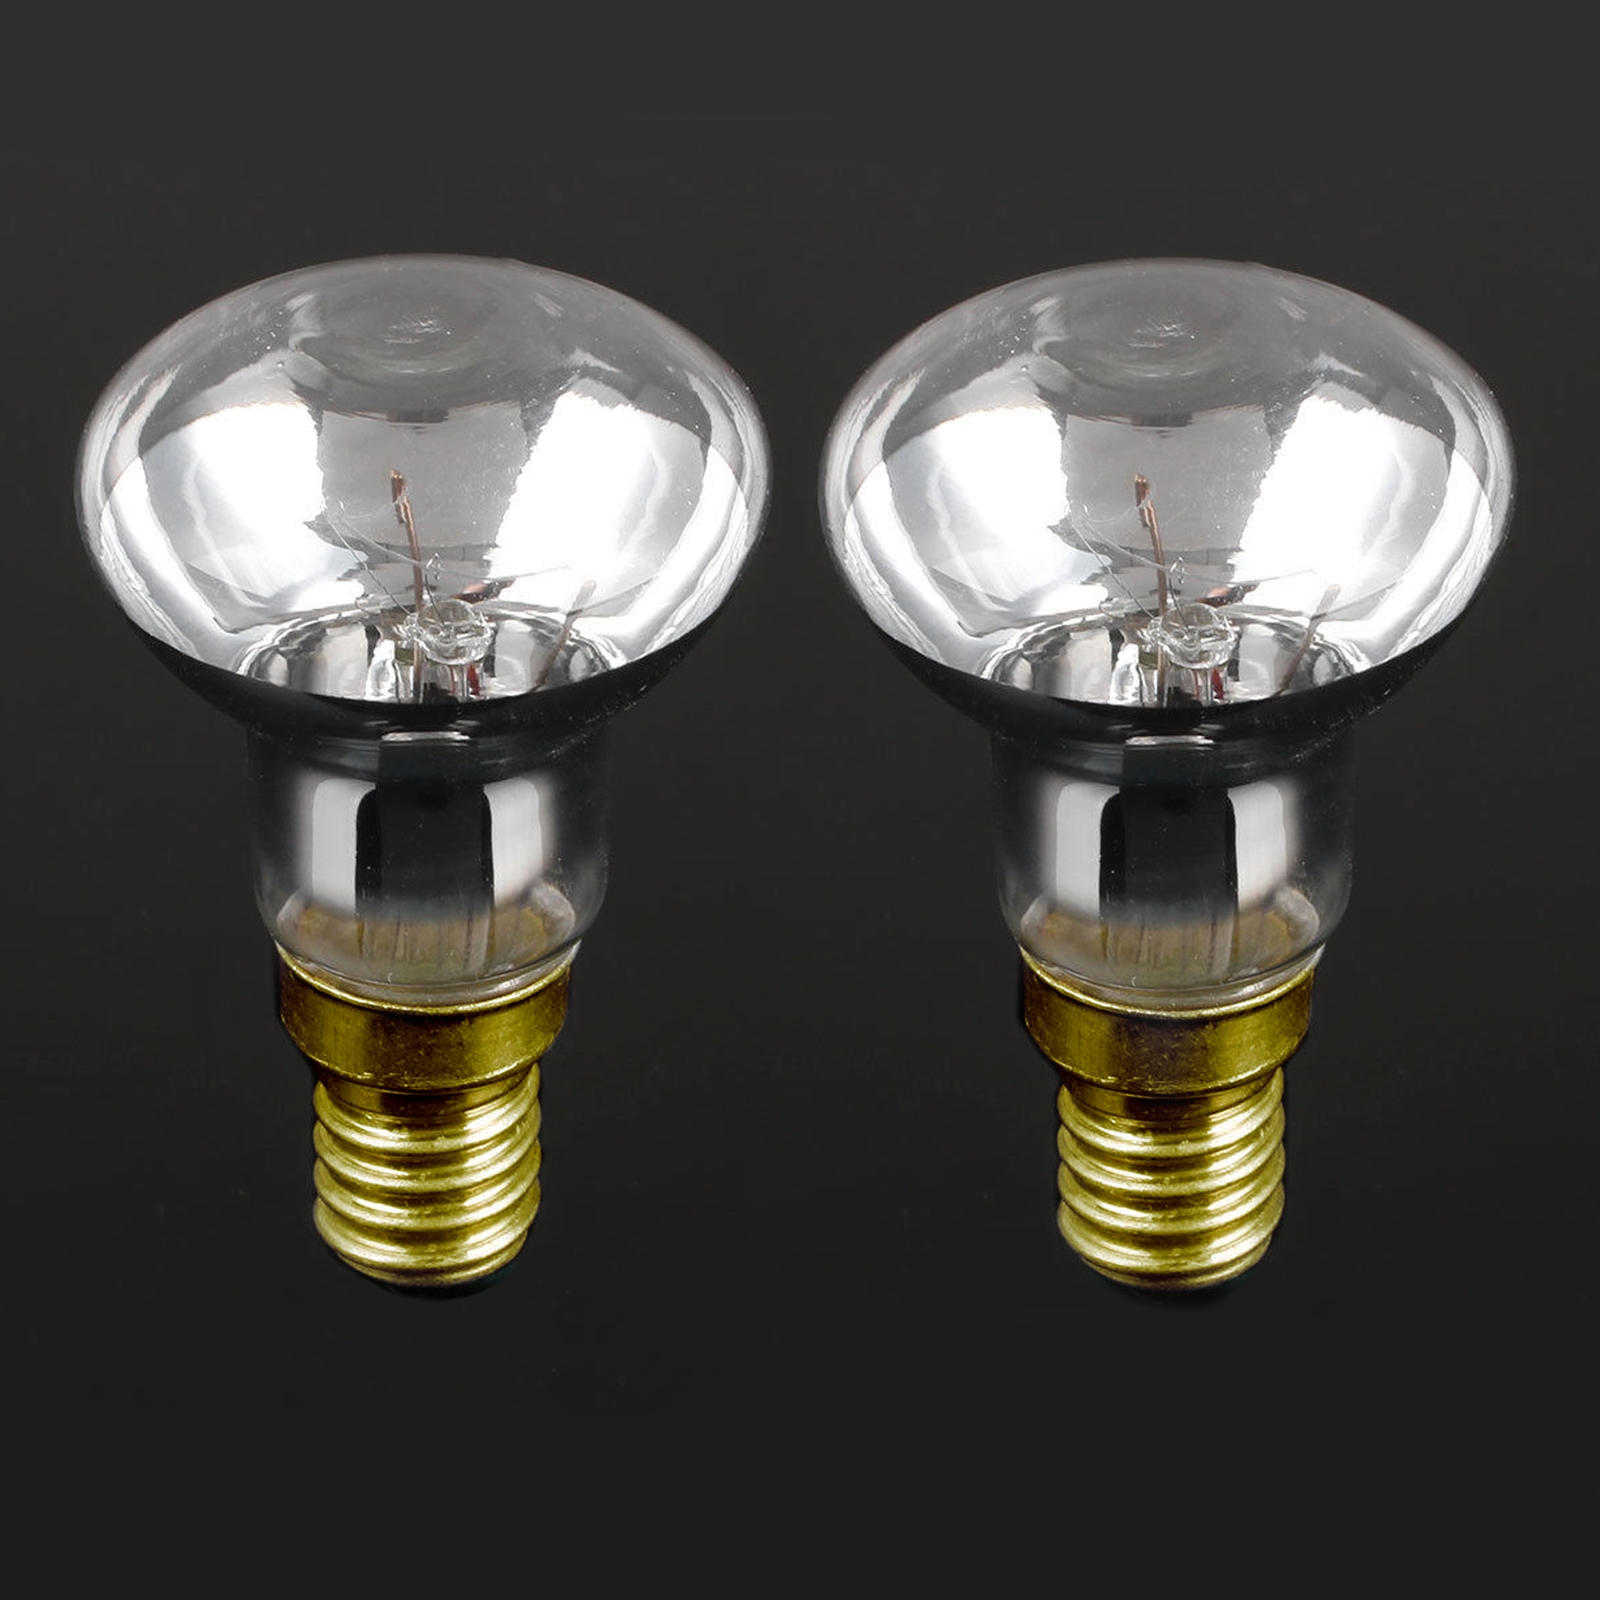 25w Lava Brand Lava Lamp Replacement Bulbs